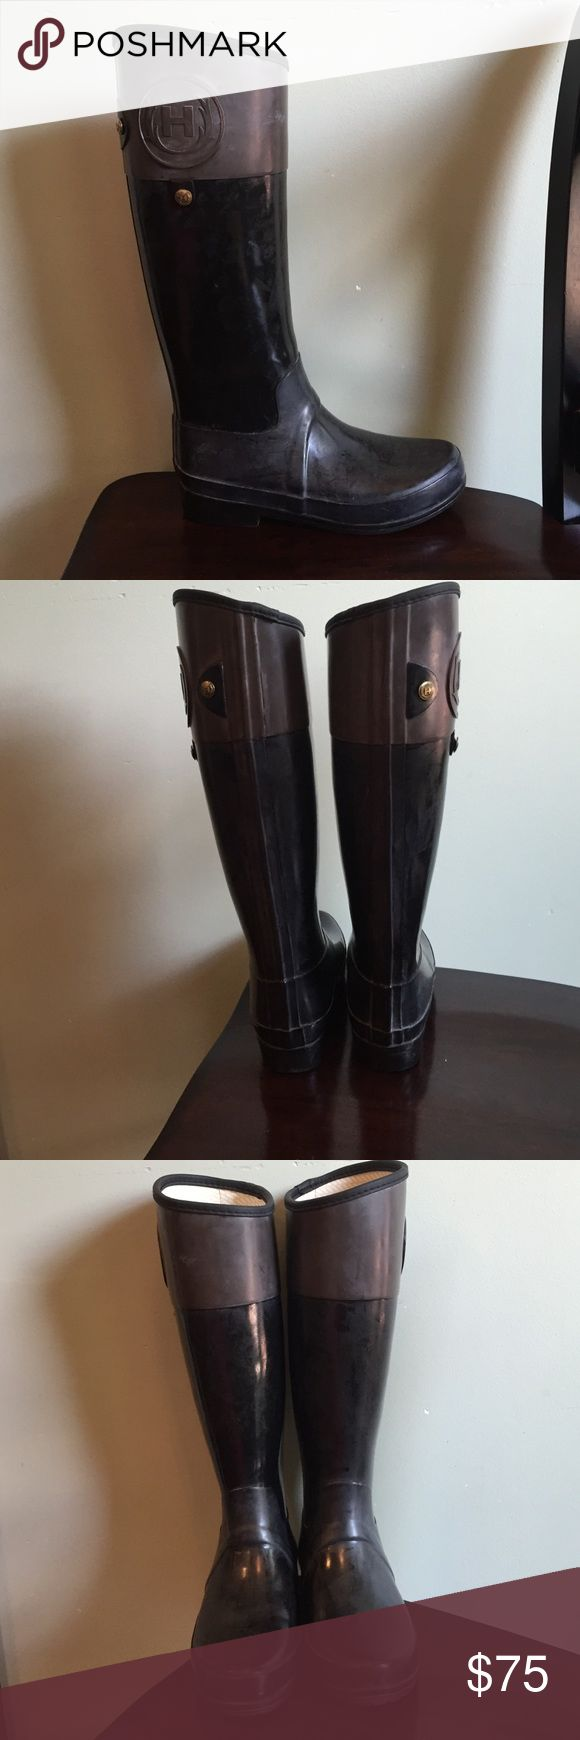 Women's Hunter Riding Rain Boots Unique two tone hunter boots (black & brown). Waterproof and easy to clean, perfect for rainy weather or winter. Hardly worn, good condition. Would fit someone best with a slim calf since they are a sleeker/equestrian style design vs. the traditional Hunter boot. Please note that Hunter boots can get a powder look b/c of the natural rubber being exposed to certain conditions (info on the official Hunter boot website). Easily cleaned with cold, soapy water…